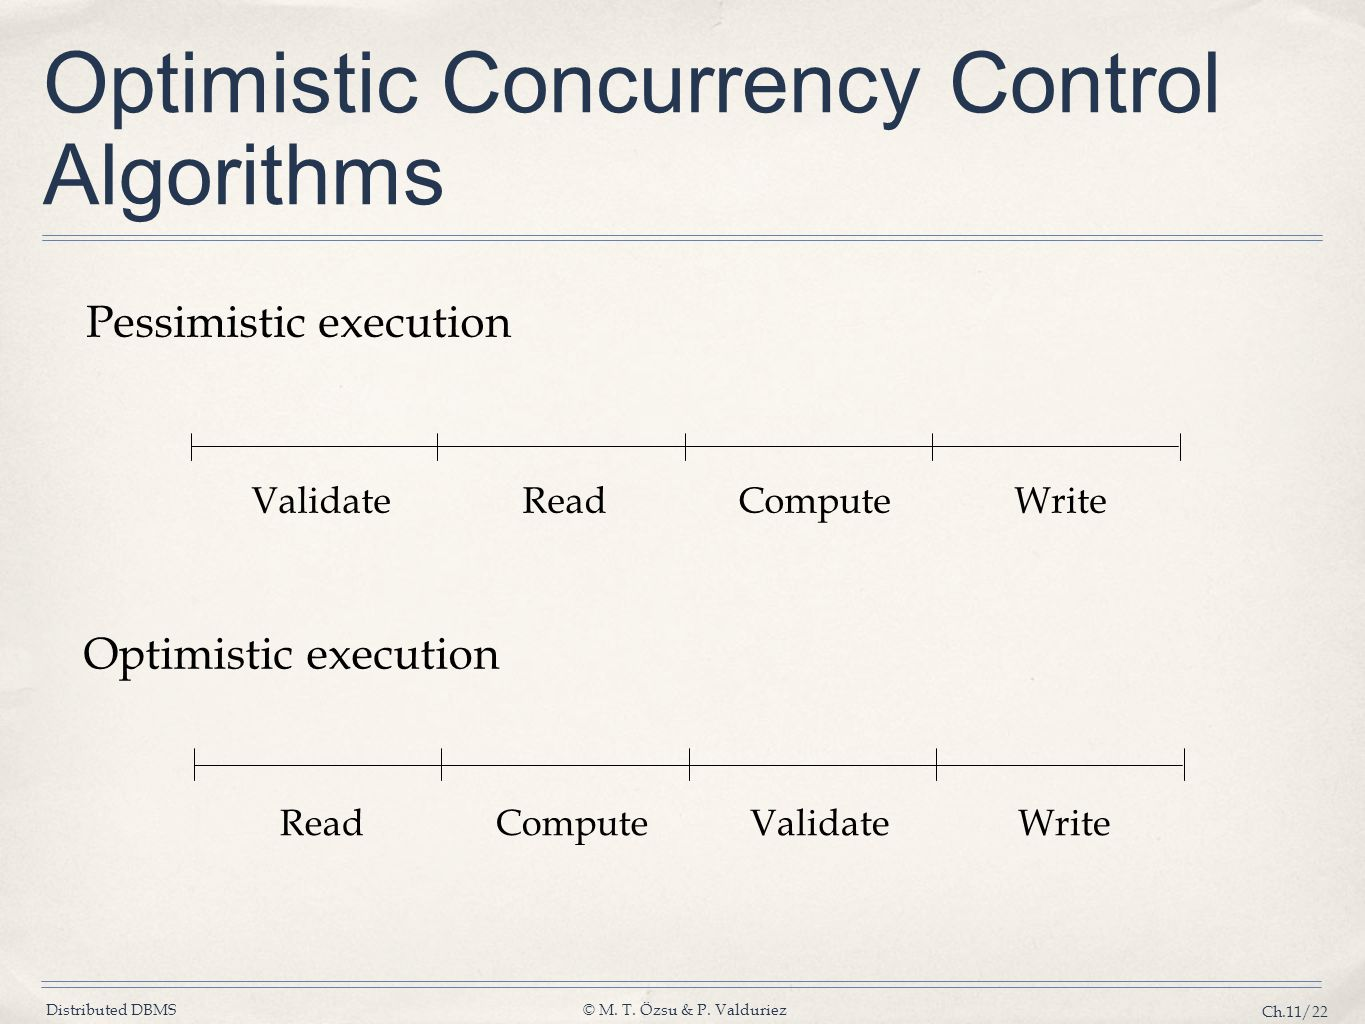 Optimistic Concurrency Control Algorithms